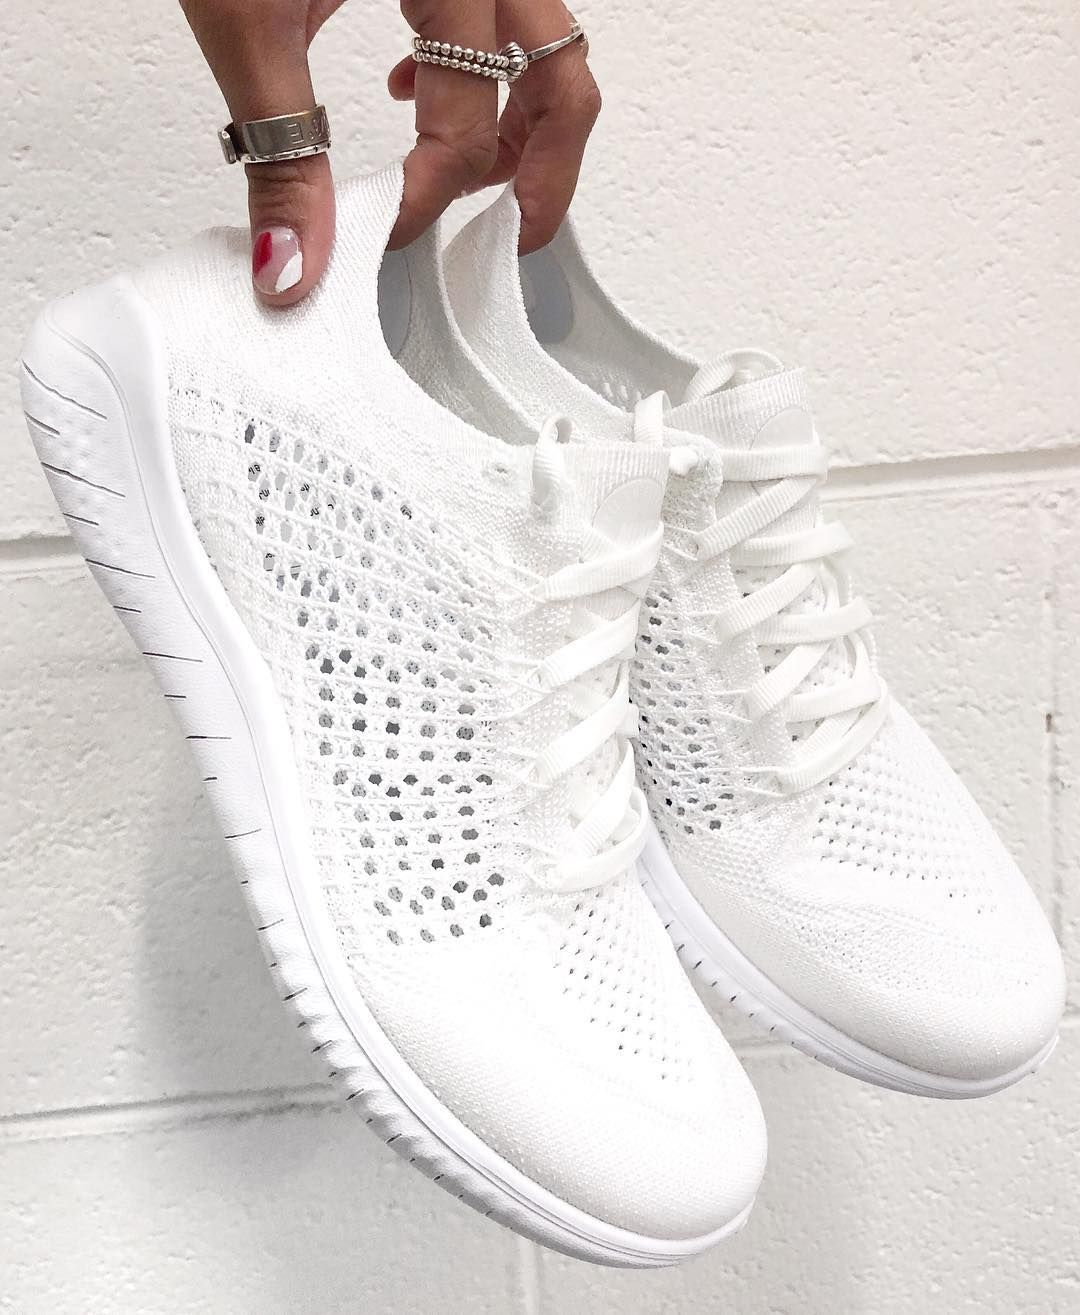 94d620c91731 We take a closer look at the stunning new Nike Free RN Flyknit 2018 Women s  Running Shoe in all white. It is the lightest trainer in the Nike Free RN  family ...